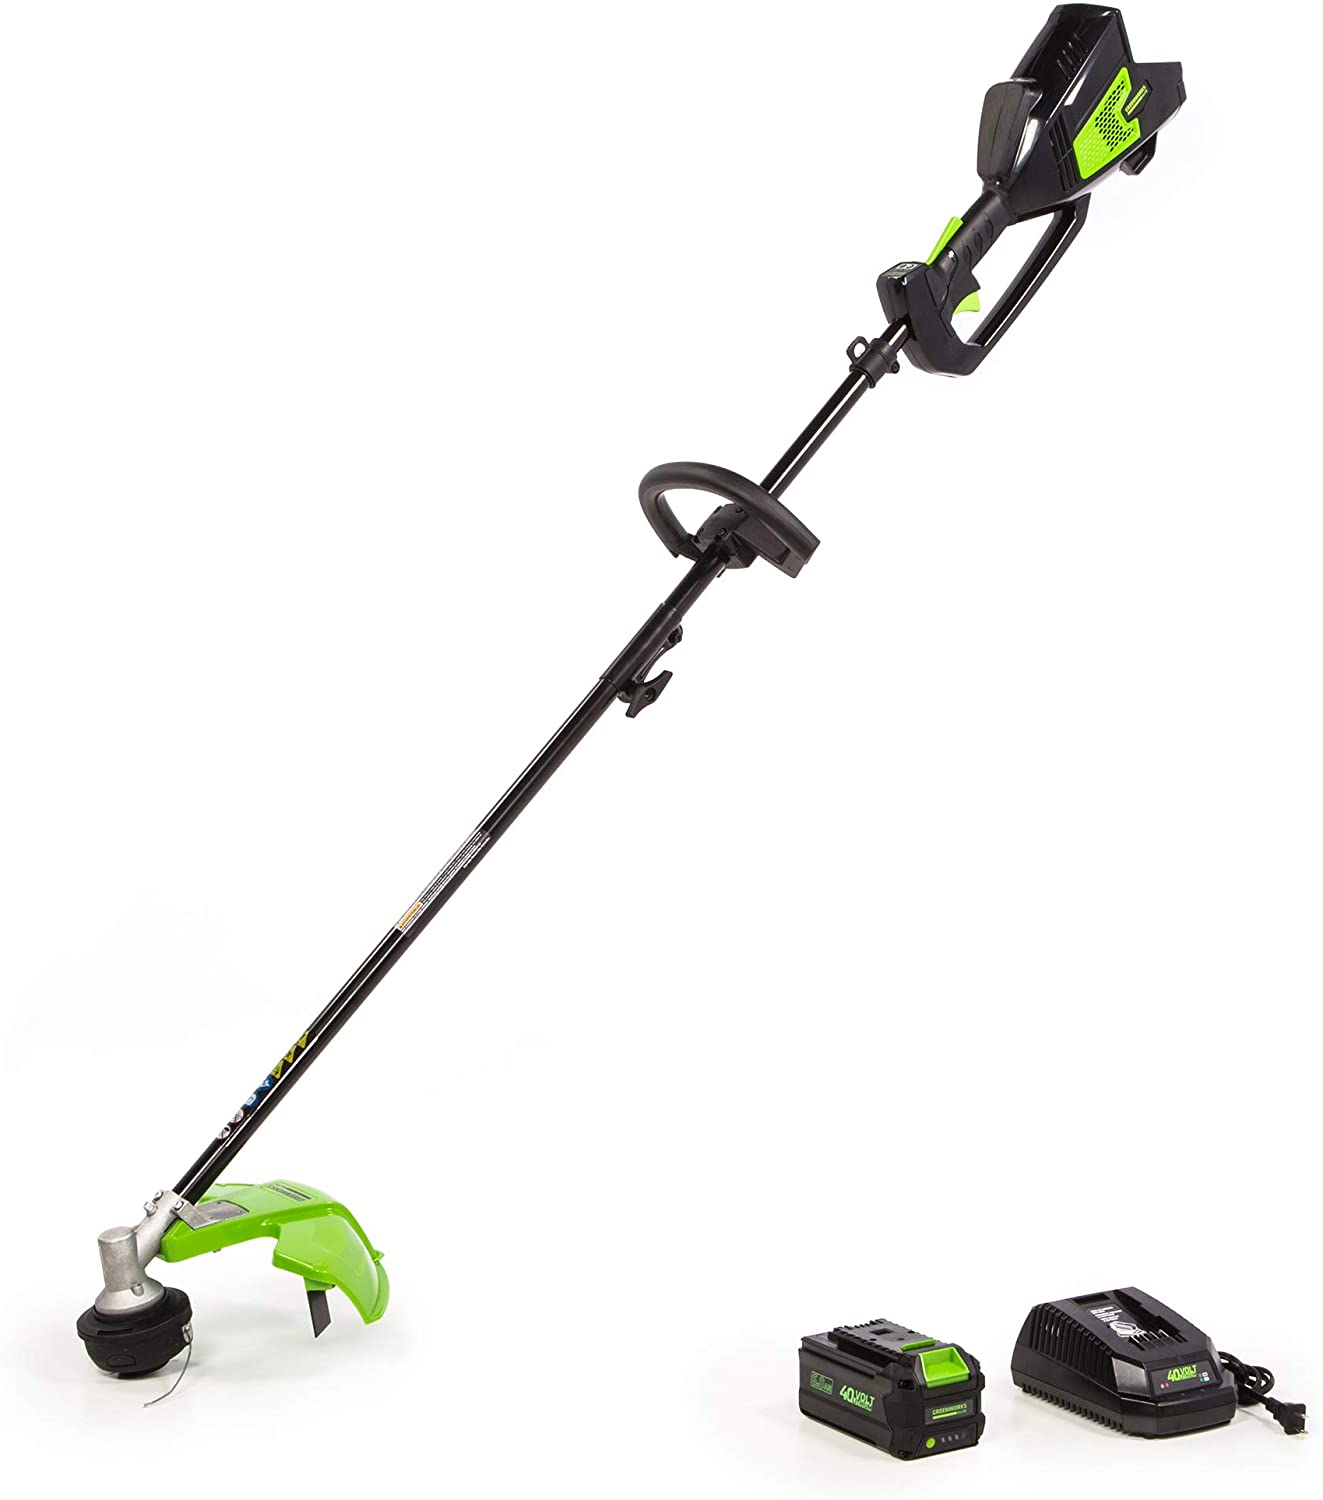 Greenworks 24V Cordless String Trimmer/Edger